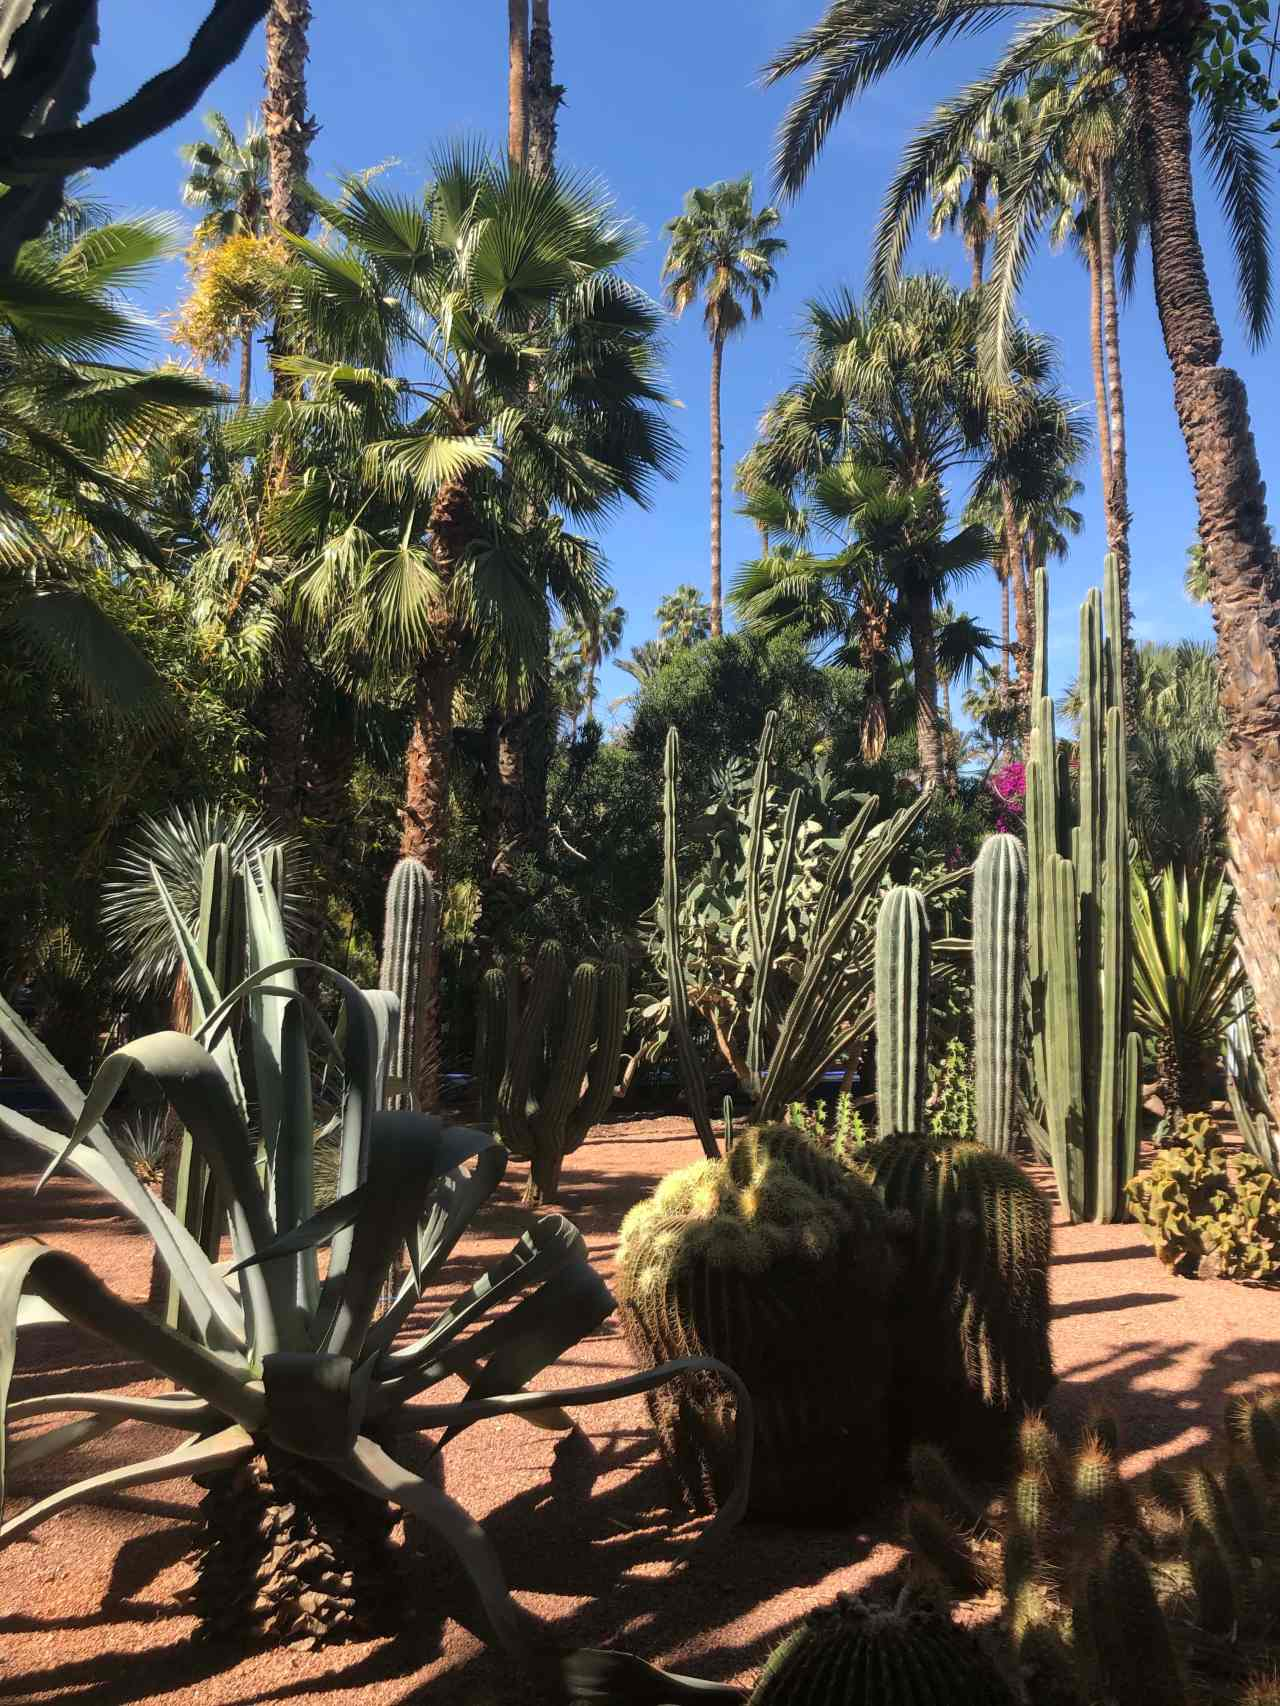 Multiple cacti at Le Jardin majorelle